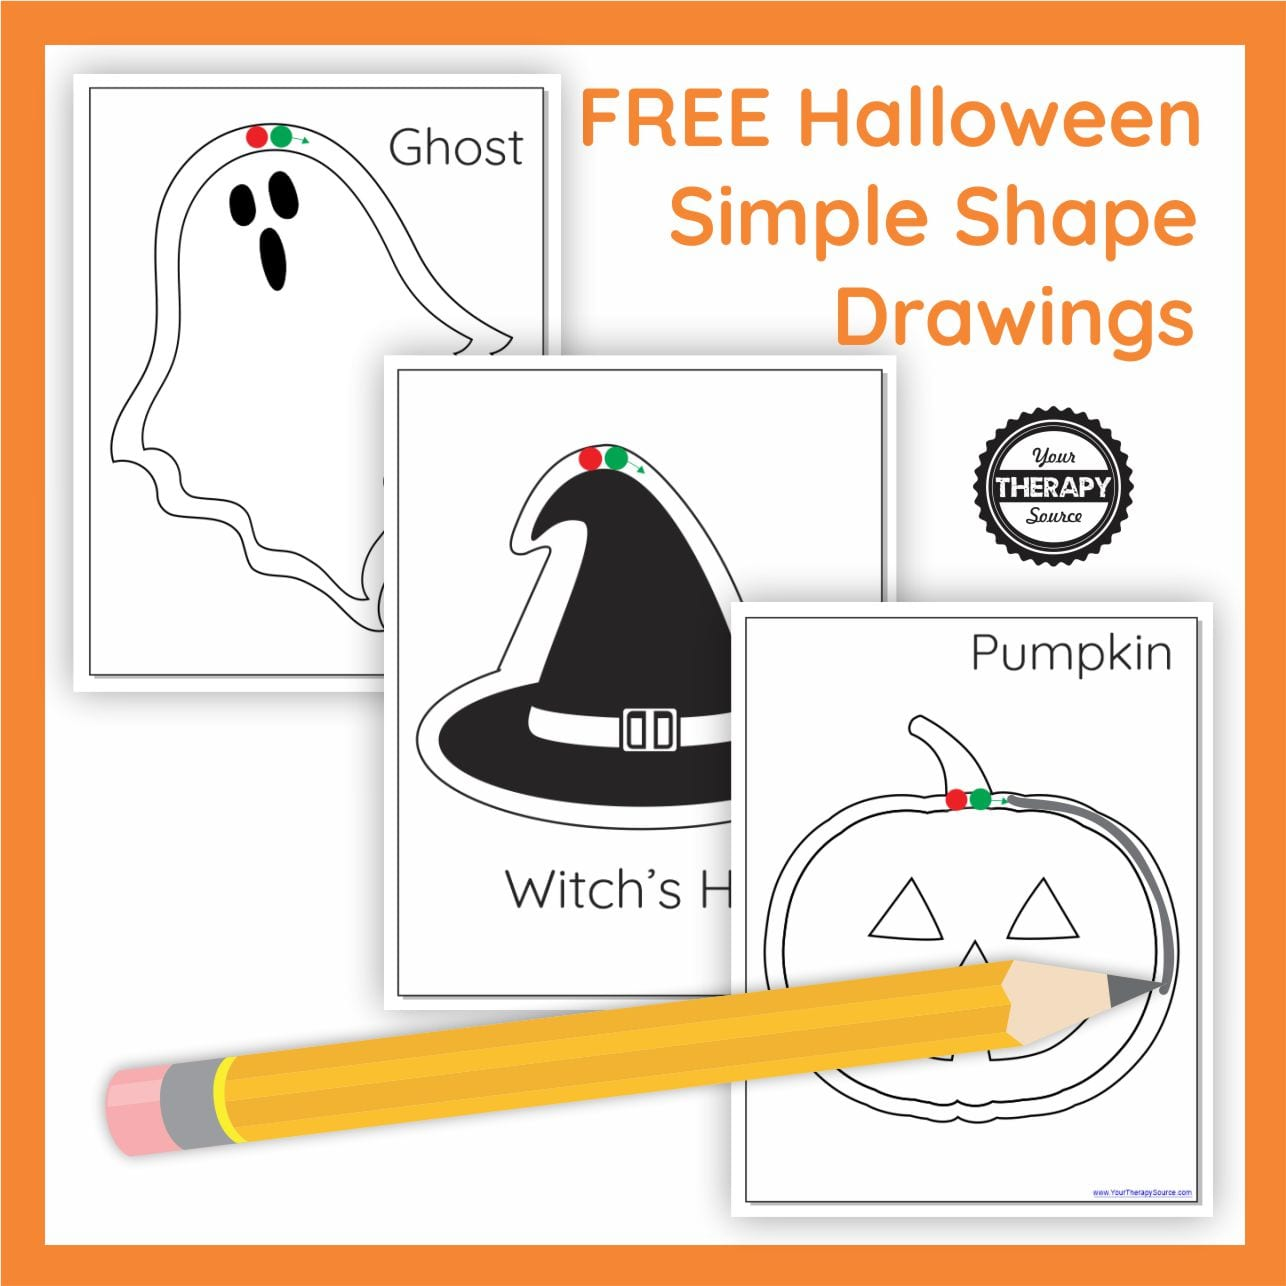 Pre-writing skills can get boring and this free Halloween Shape Drawings 3 page PDF printable can jazz up everyday pre-writing practice during the month of October.